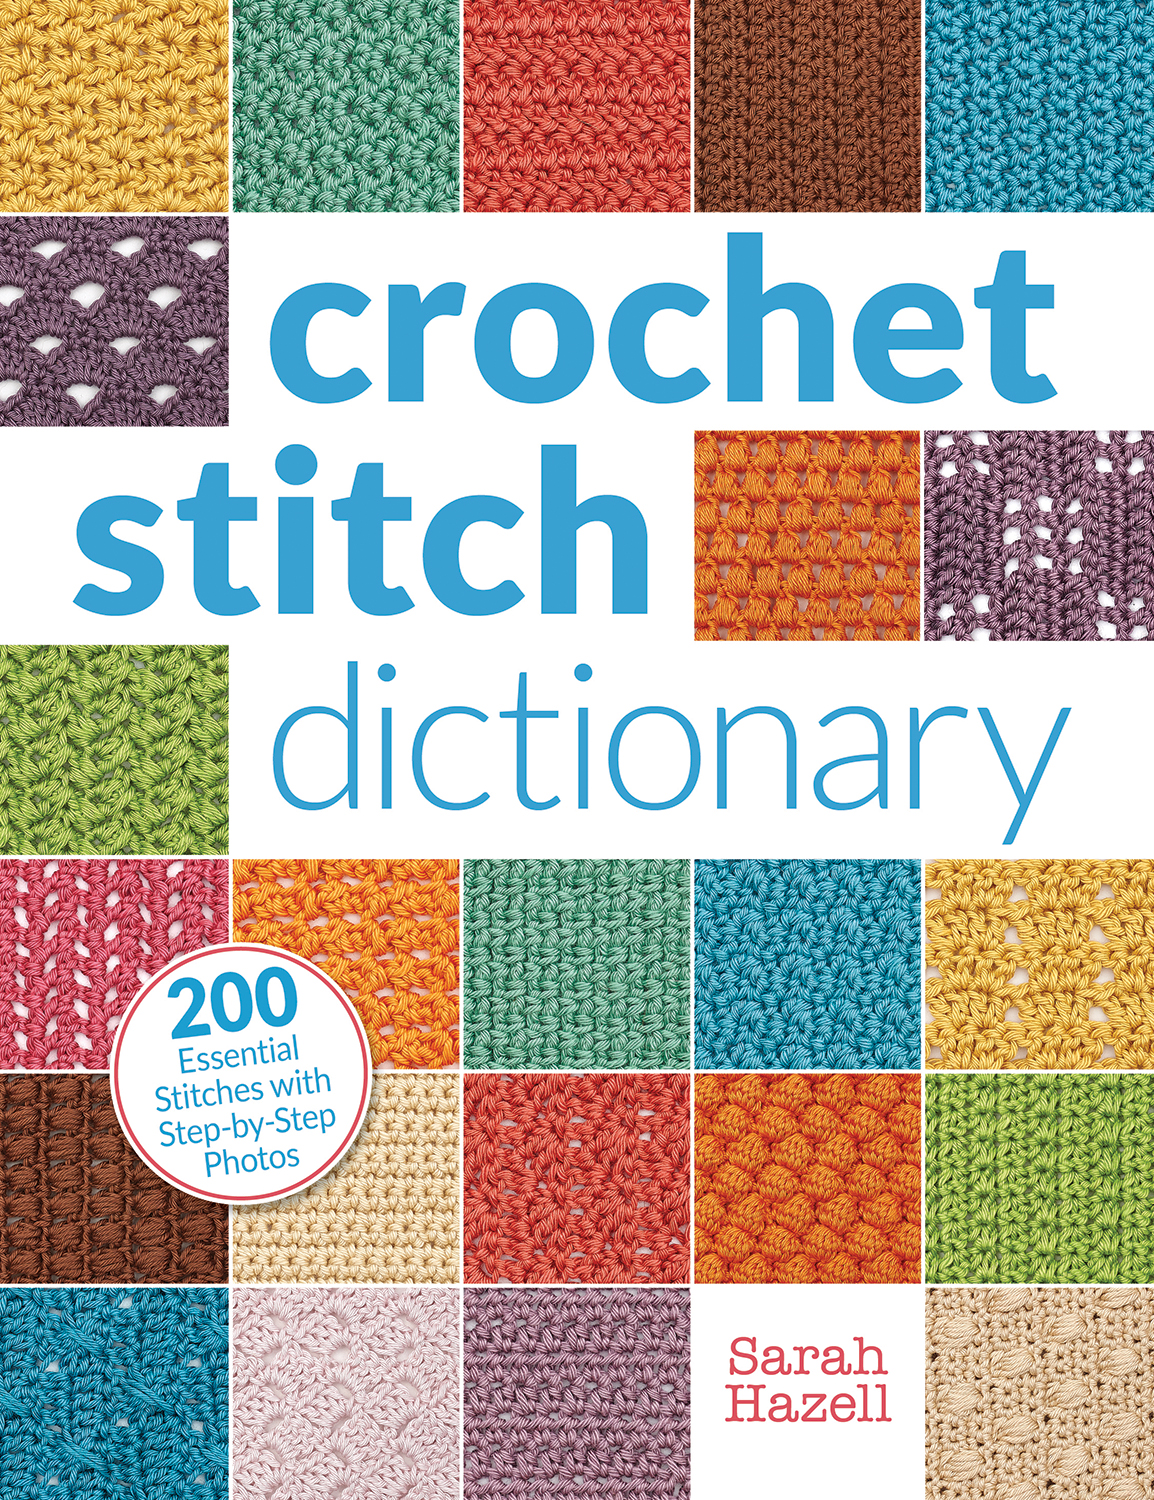 Crochet Stitch Dictionary Archives - Crochet Knit Too